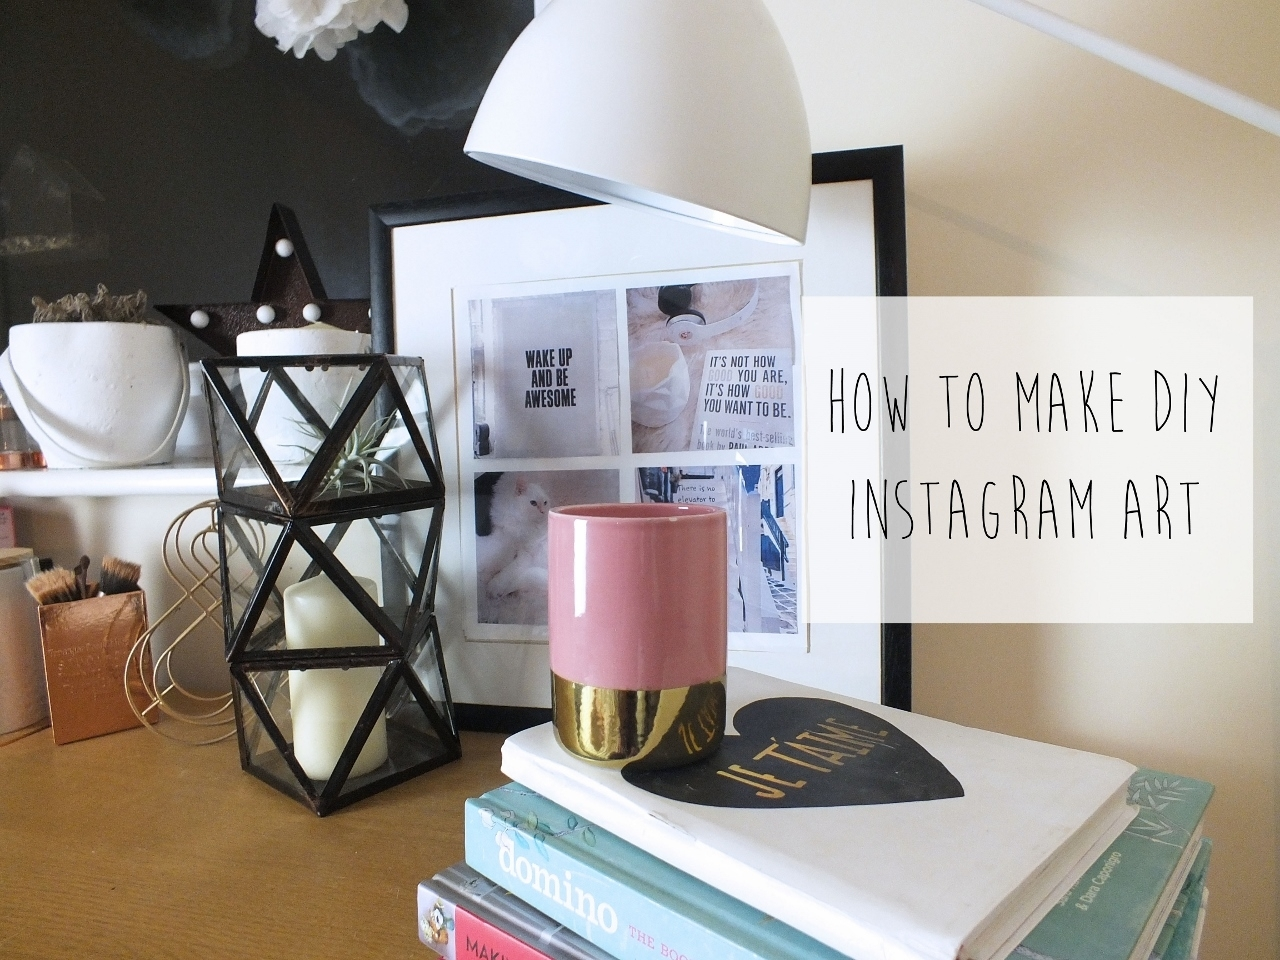 How To Make Diy Instagram Wall Art – Don't Cramp My Style For Latest Instagram Wall Art (View 8 of 20)